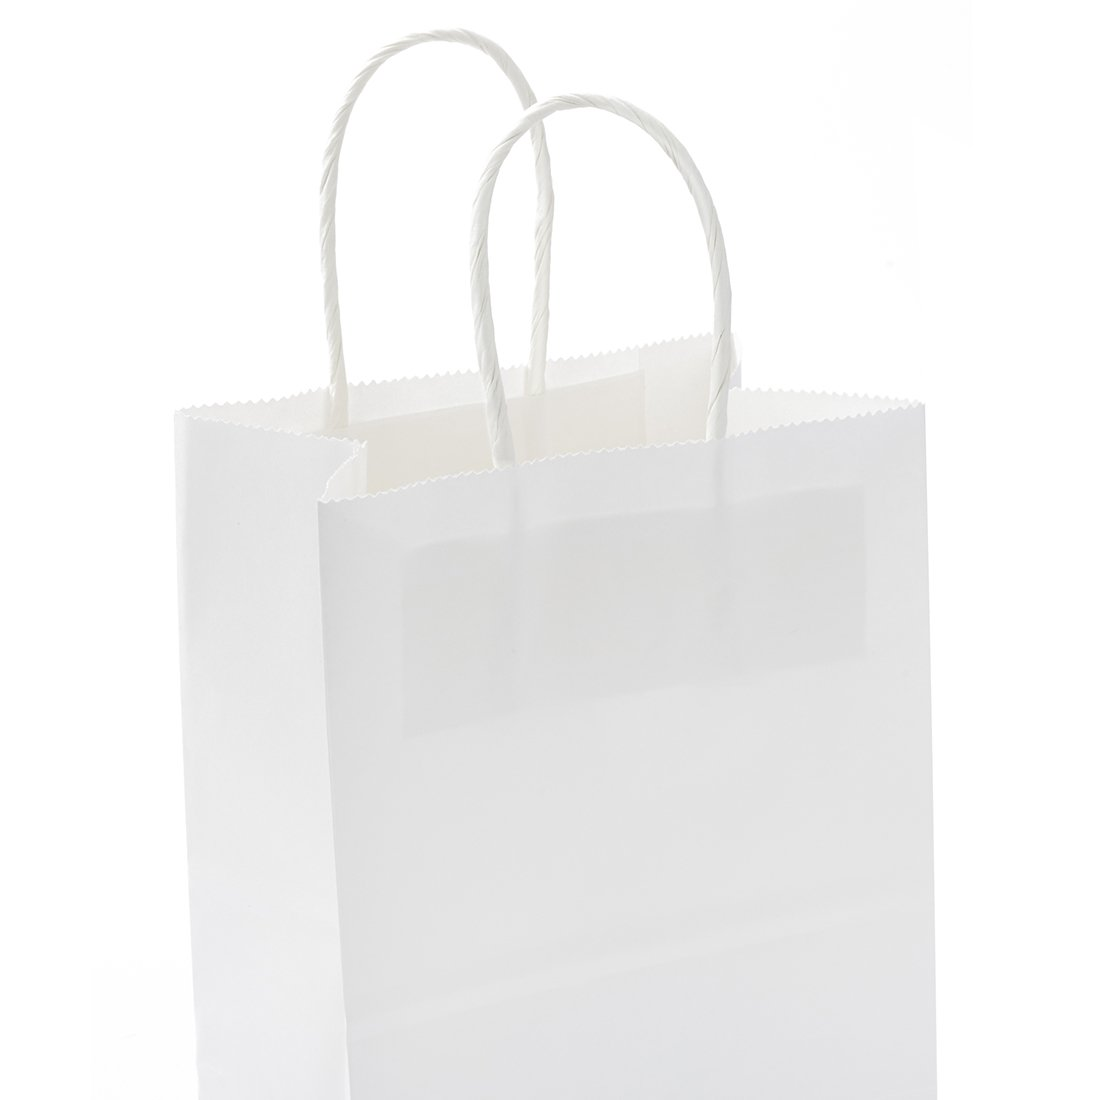 GSSUSA Halulu 100PCS 5.25'' x 3.75'' x 8'' White Kraft Paper Bags, Handled, Shopping, Gift, Merchandise, Carry, Retail,Party Bags by GSSUSA (Image #3)